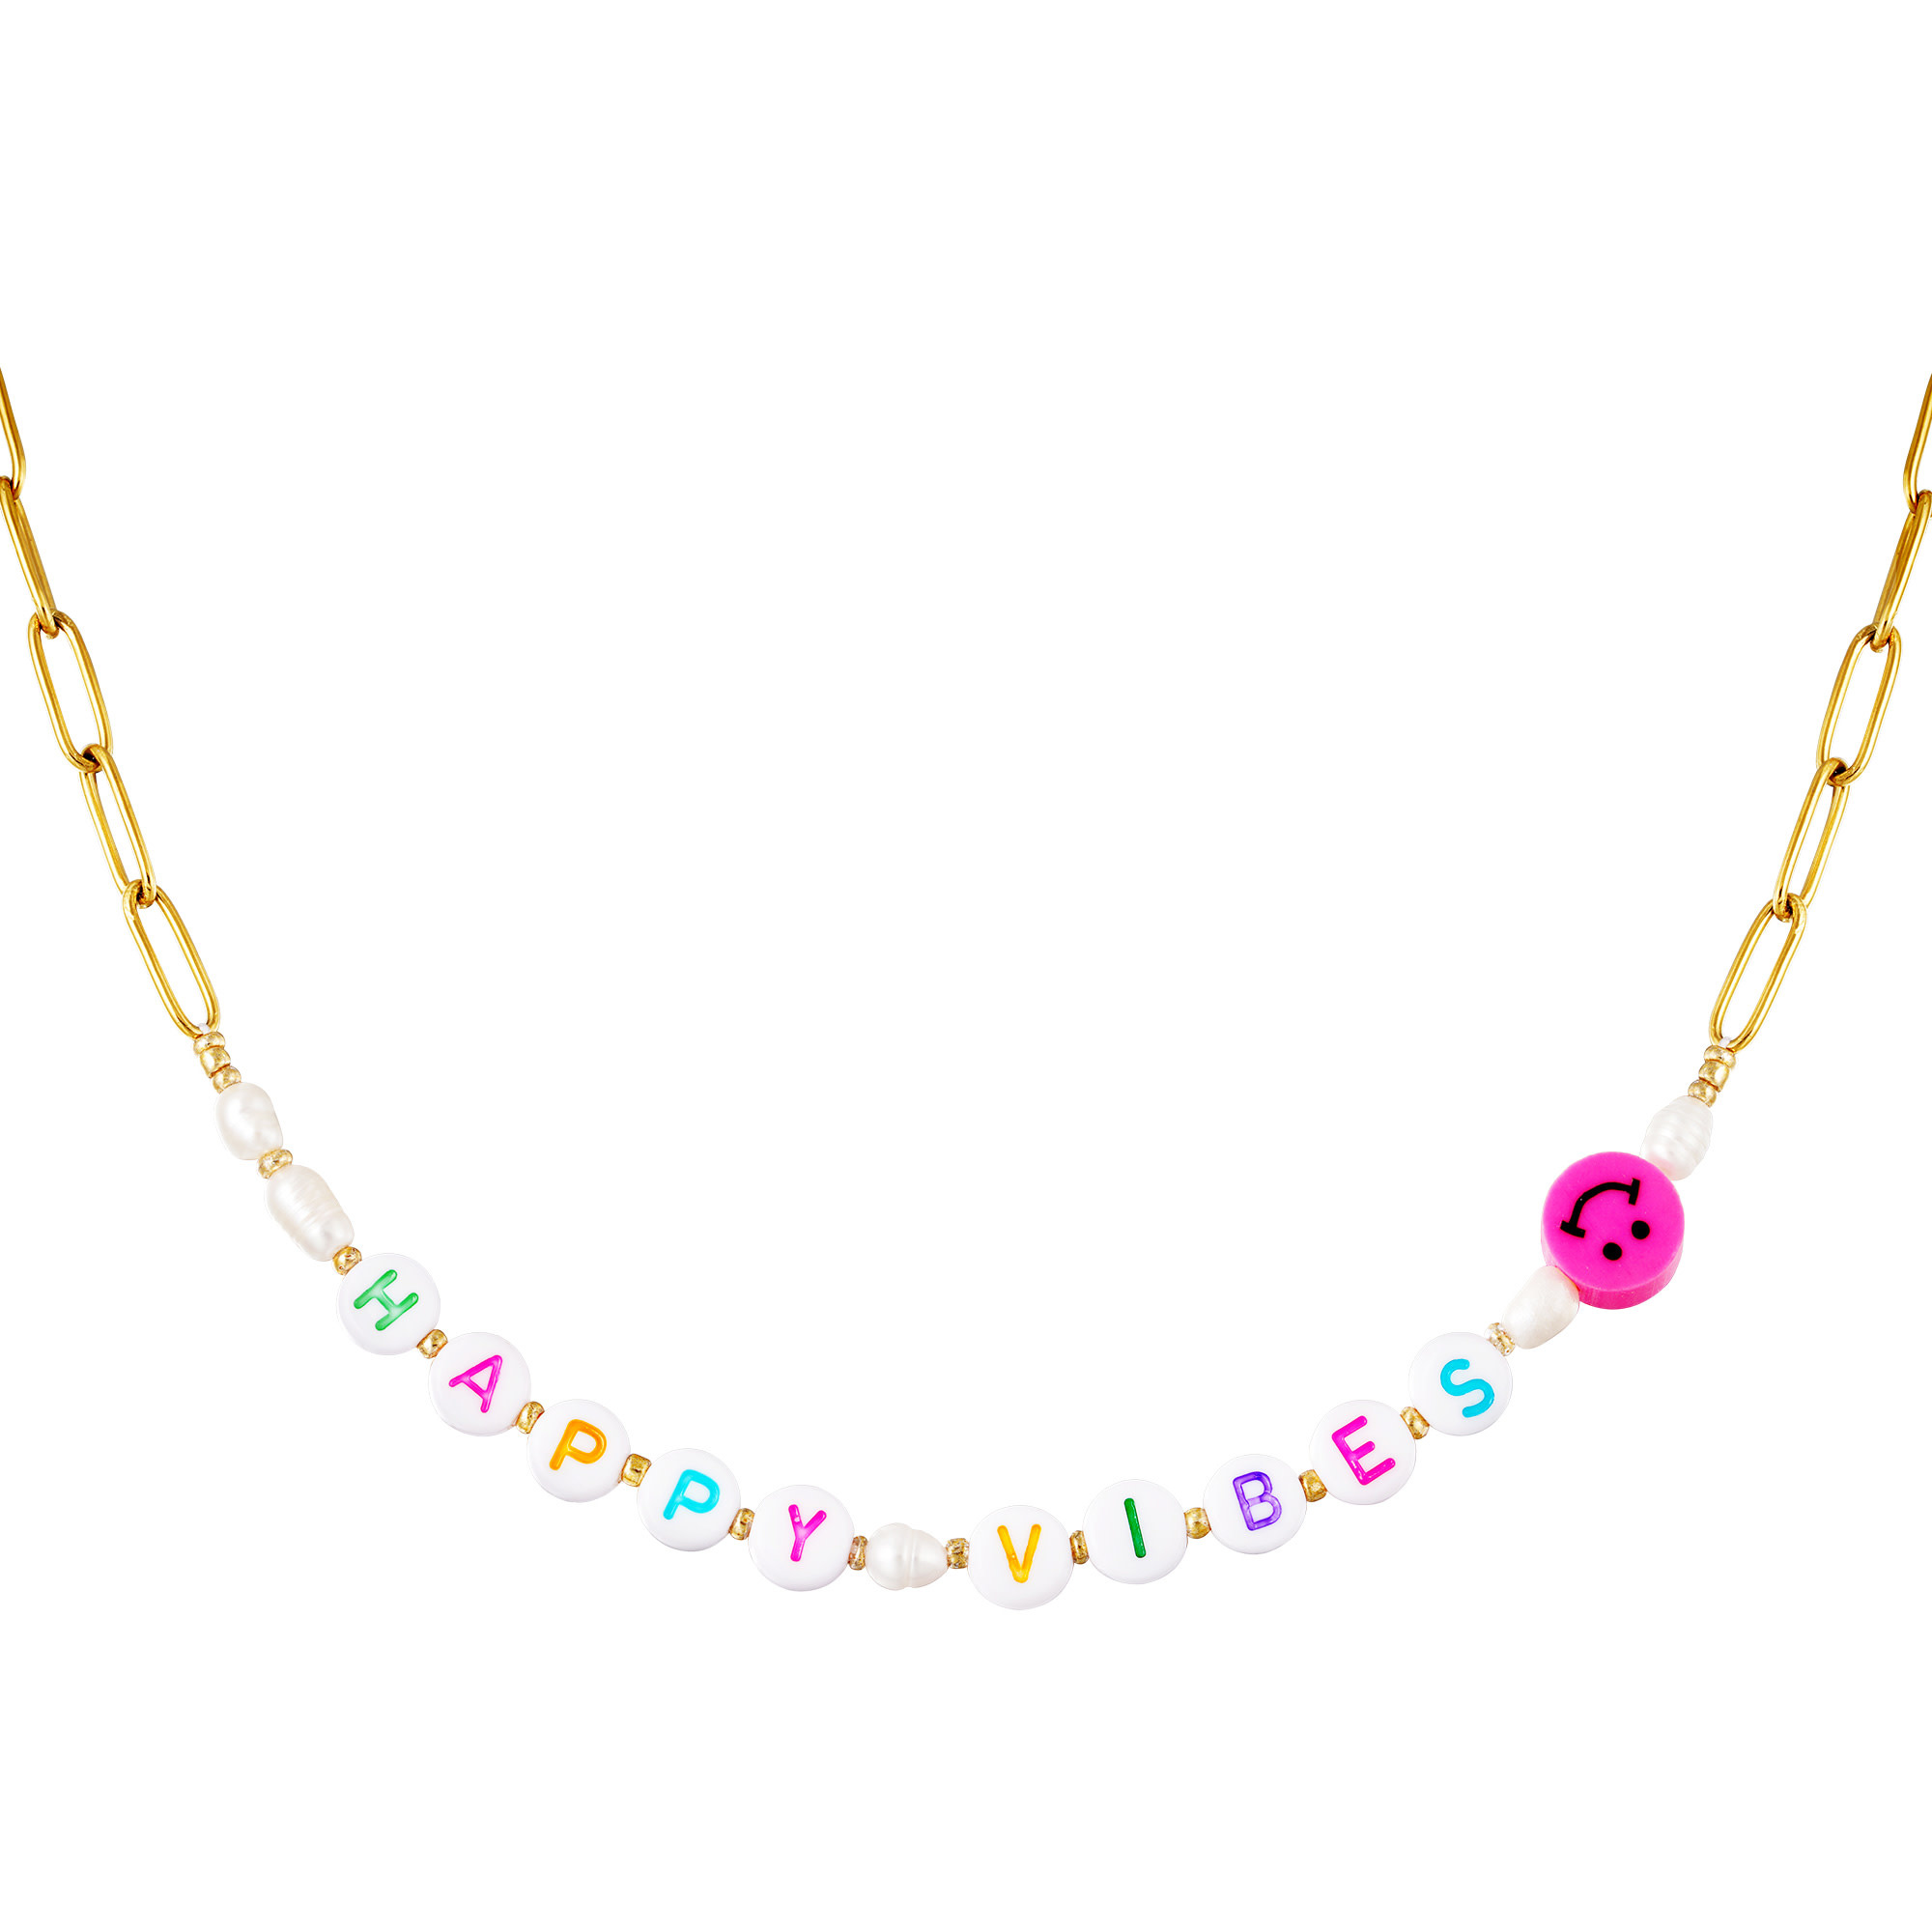 With love Necklace Happy vibes